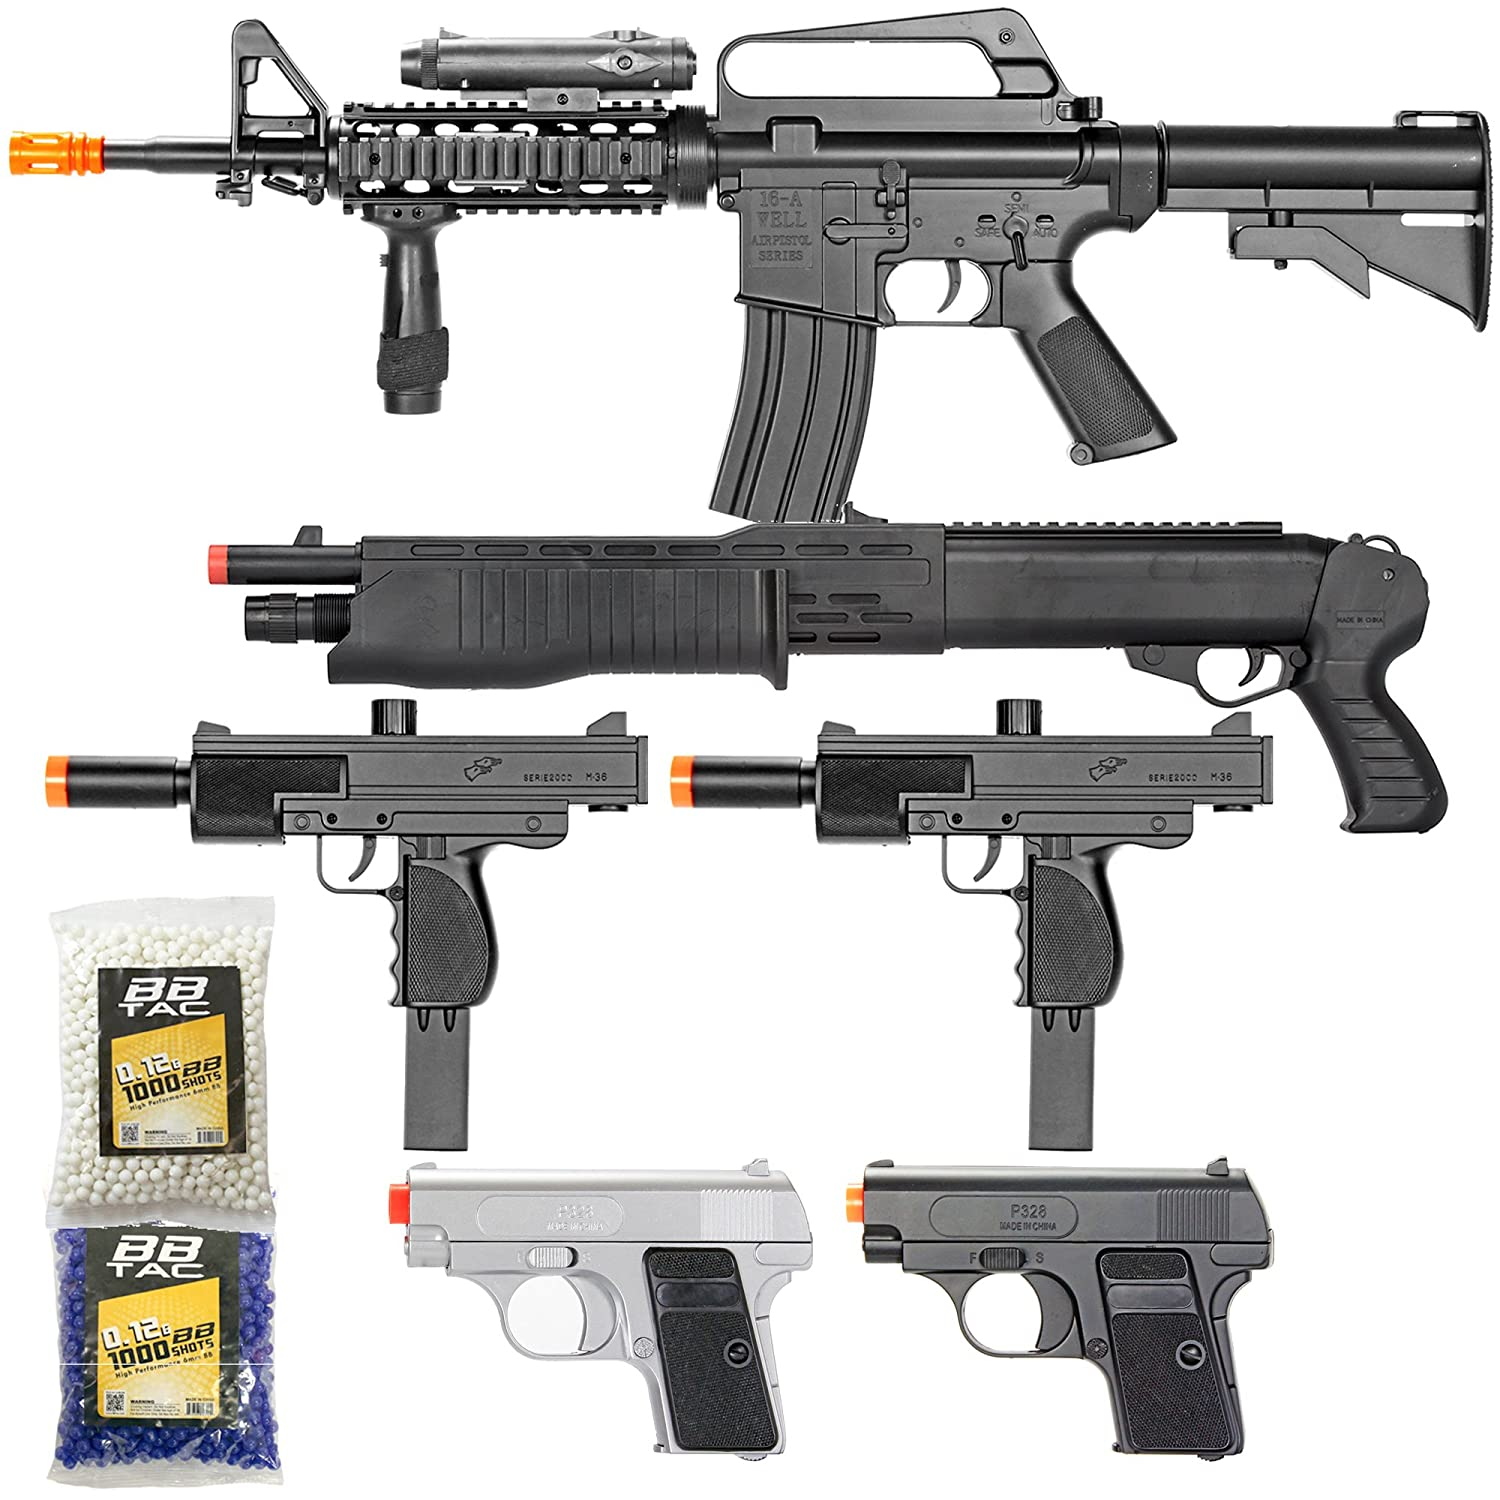 BBTac Airsoft Gun Package - Black Ops - Collection of Airsoft Guns -  Powerful Spring Rifle, Shotgun, Two SMG, Mini Pistols and BB Pellets, Great  for